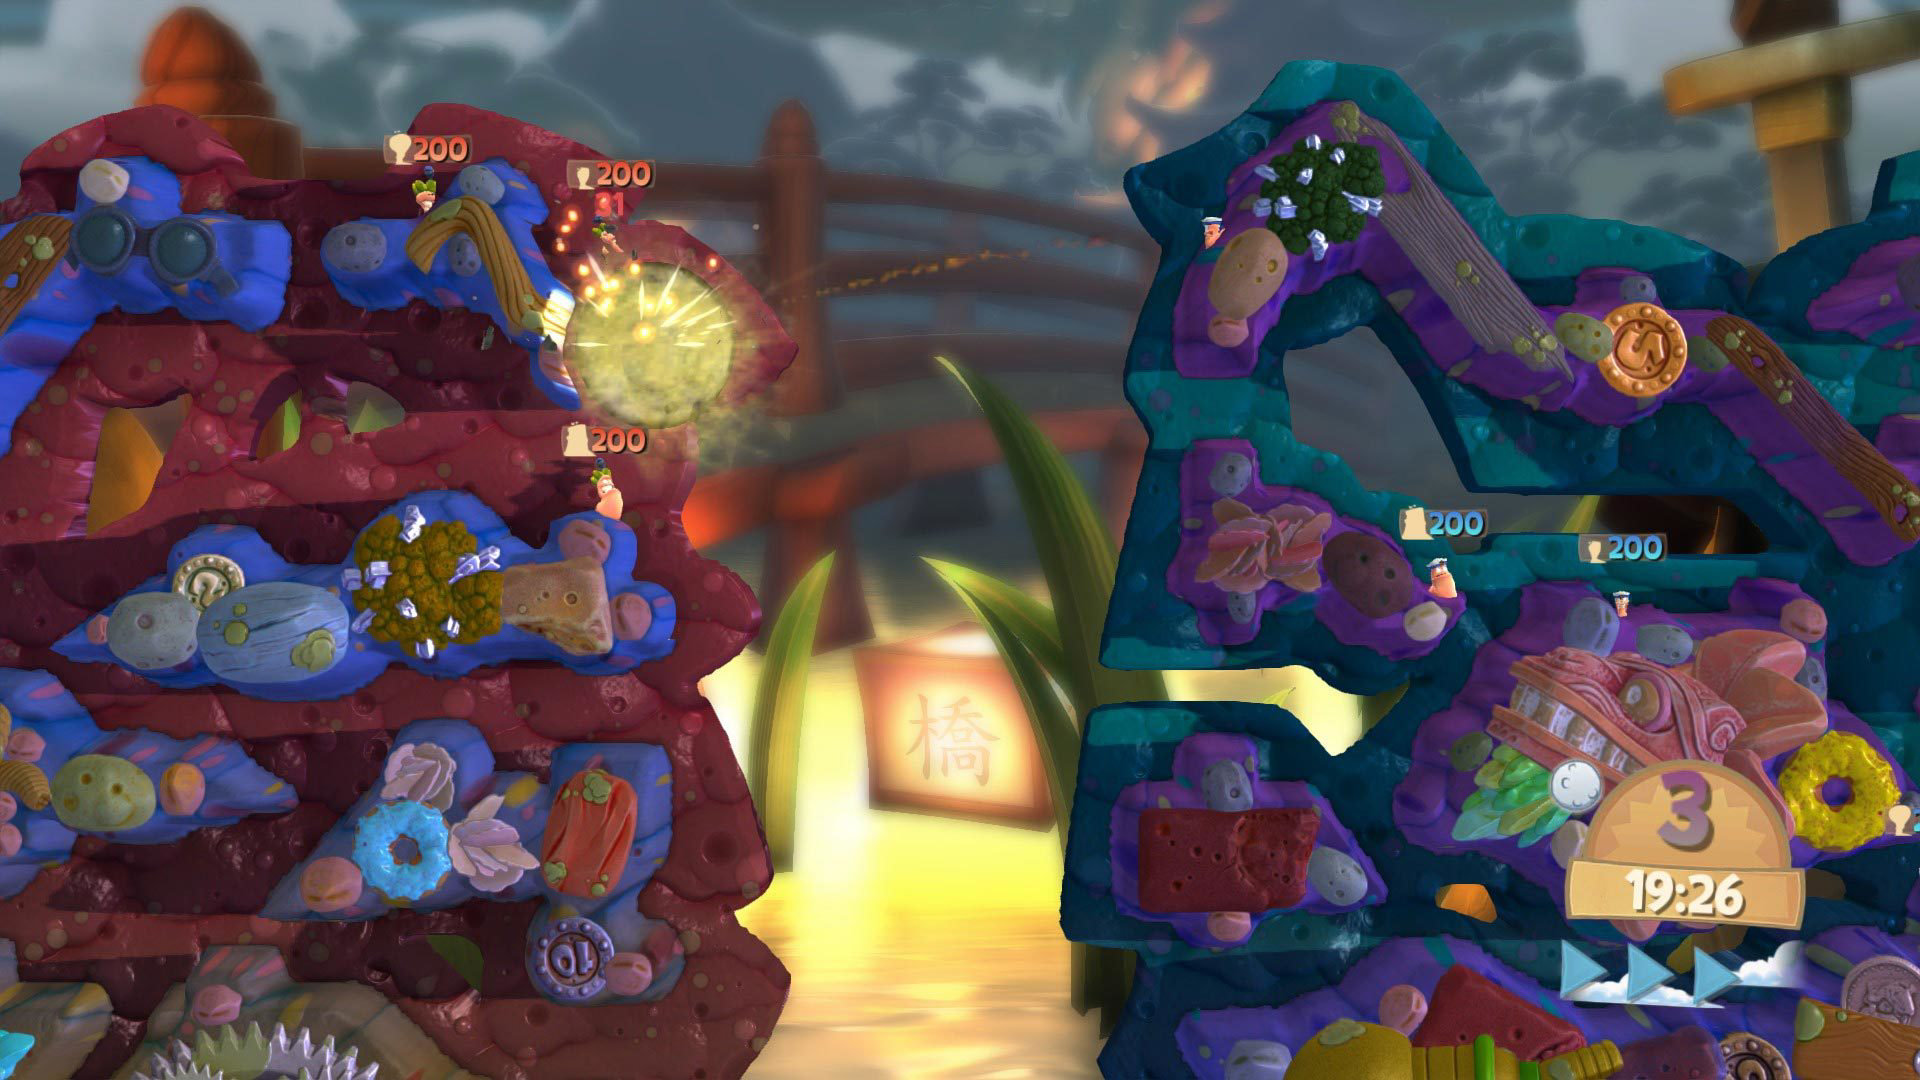 Latest Playstation News Worms-battleground-screenshot-07-ps4-us-3jun14?$MediaCarousel_Original$